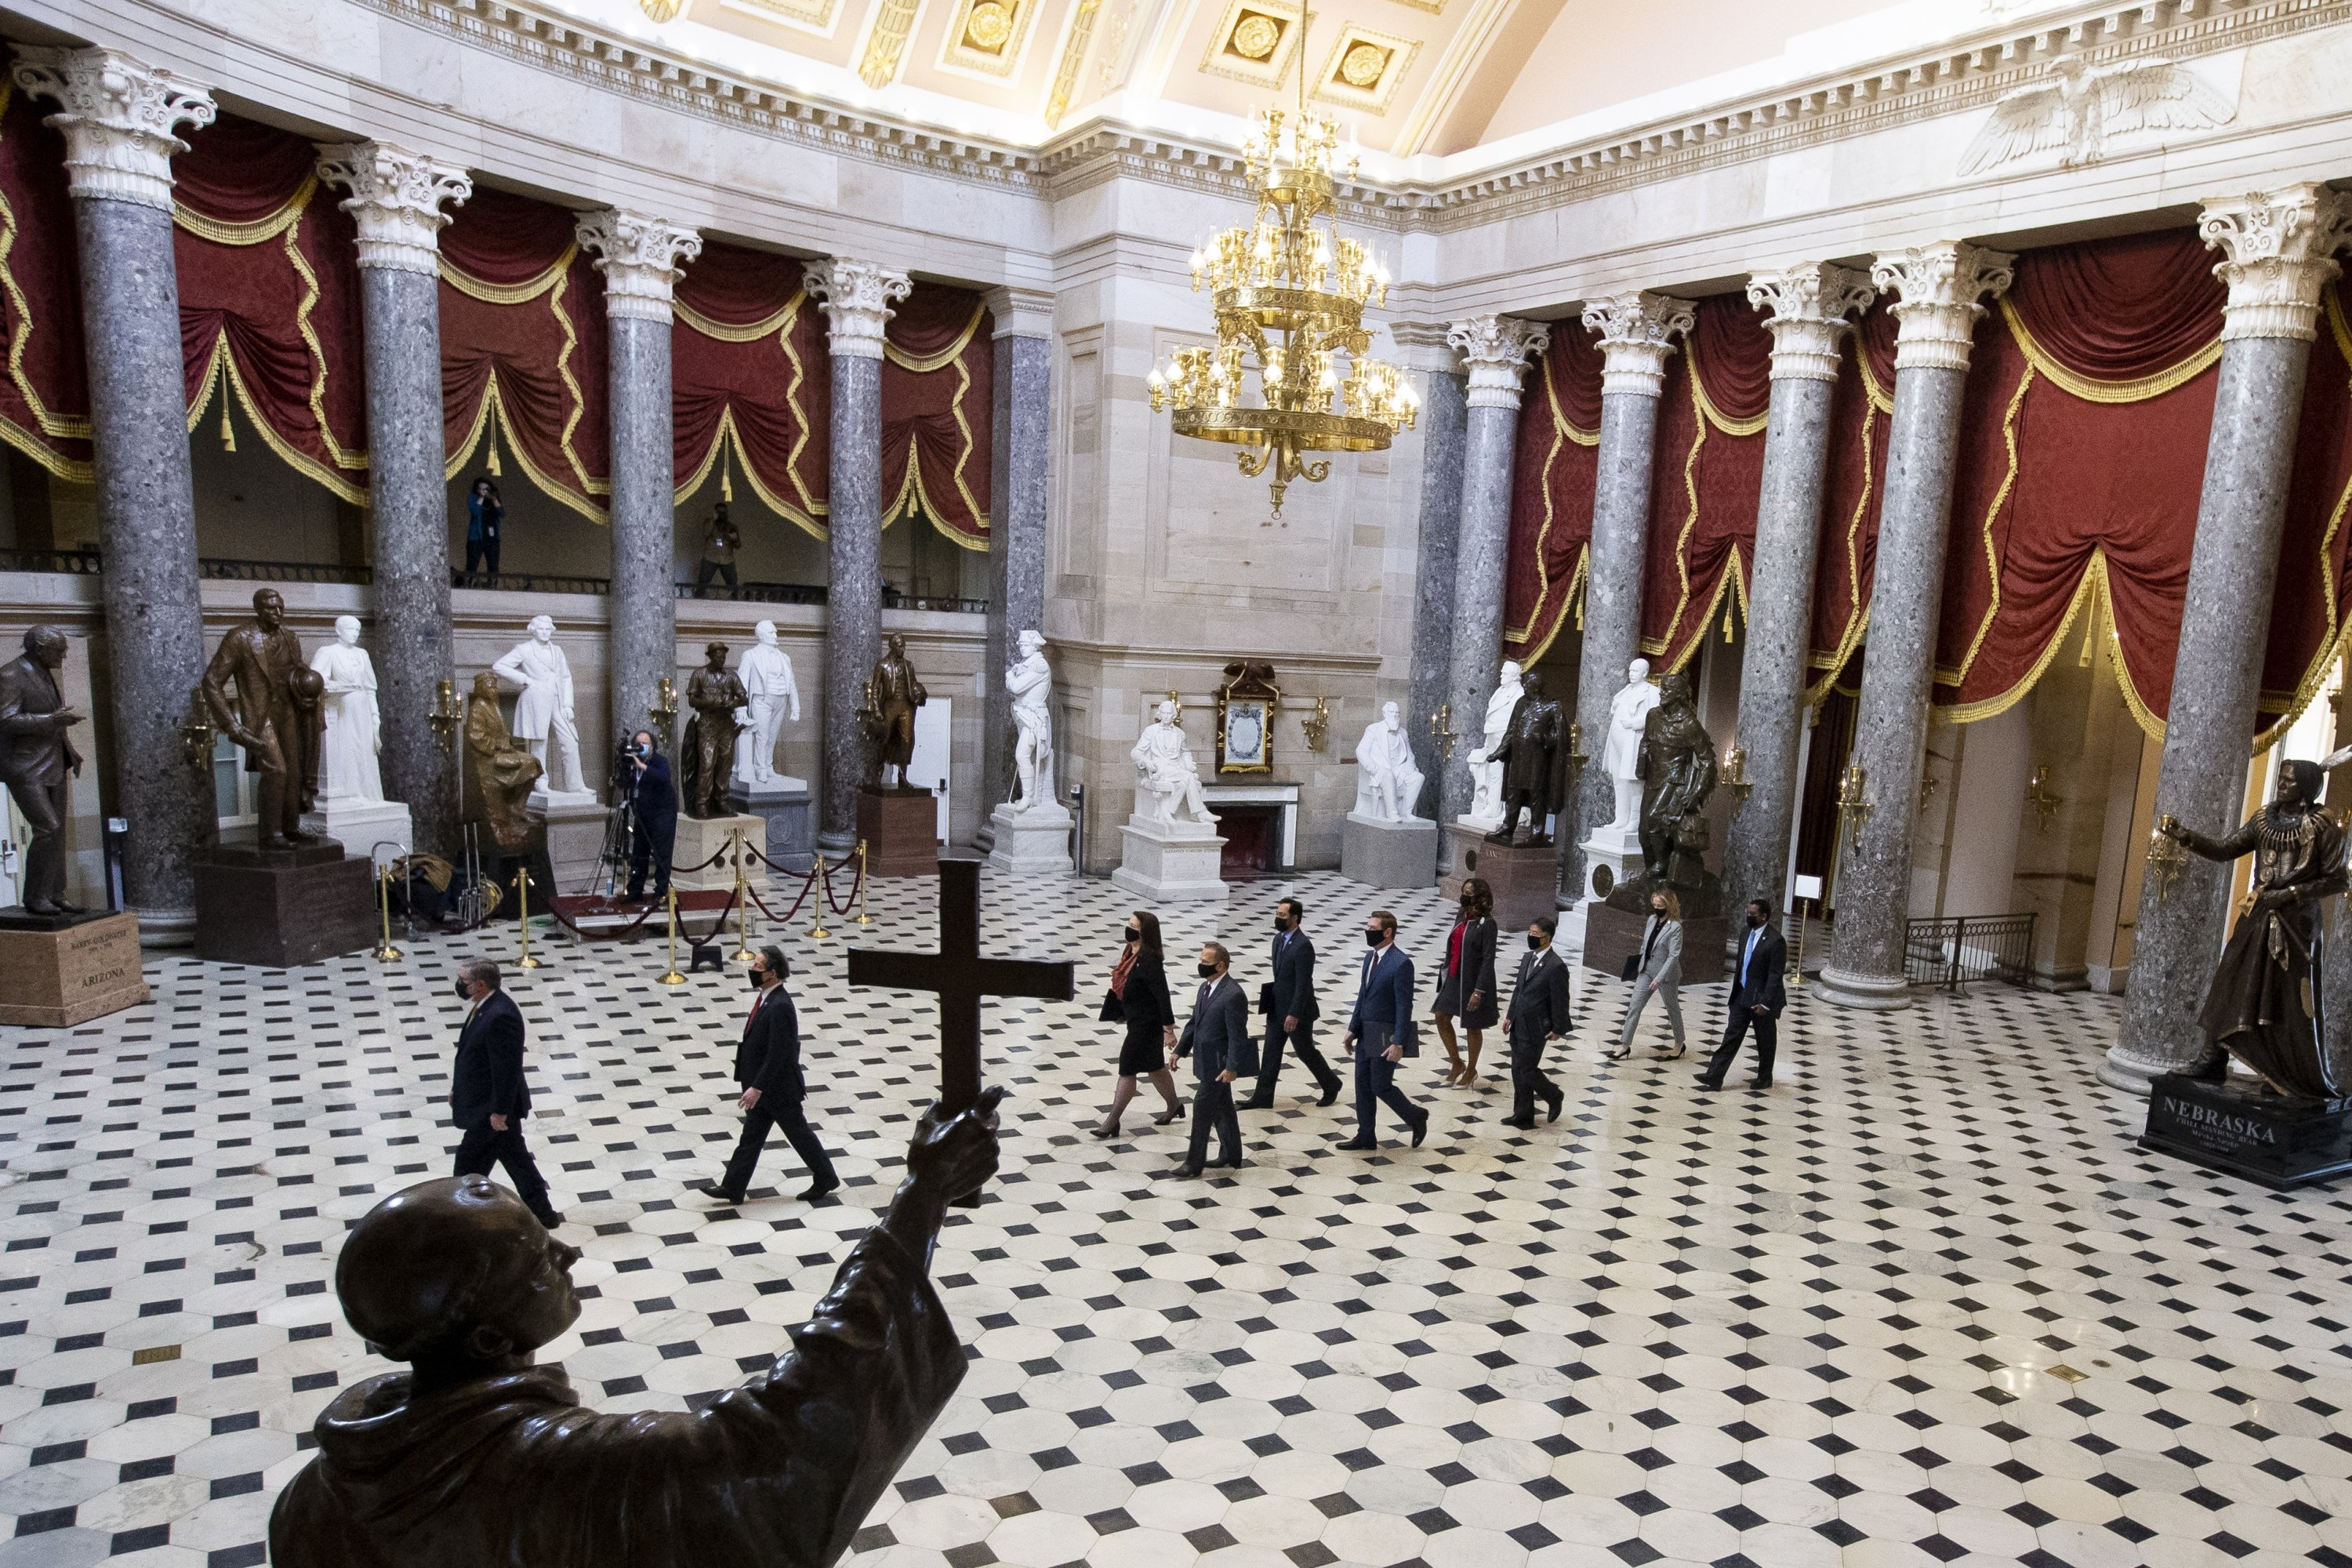 House impeachment managers, led by Acting Sergeant at Arms of the United States House of Representatives Tim Blodgett (L), walk through National Statuary Hall on their way to the Senate chamber for the start of the Senate impeachment trial against former U.S. President Donald J. Trump, on Capitol Hill in Washington, D.C., U.S., Feb. 9, 2021. (EPA Photo)